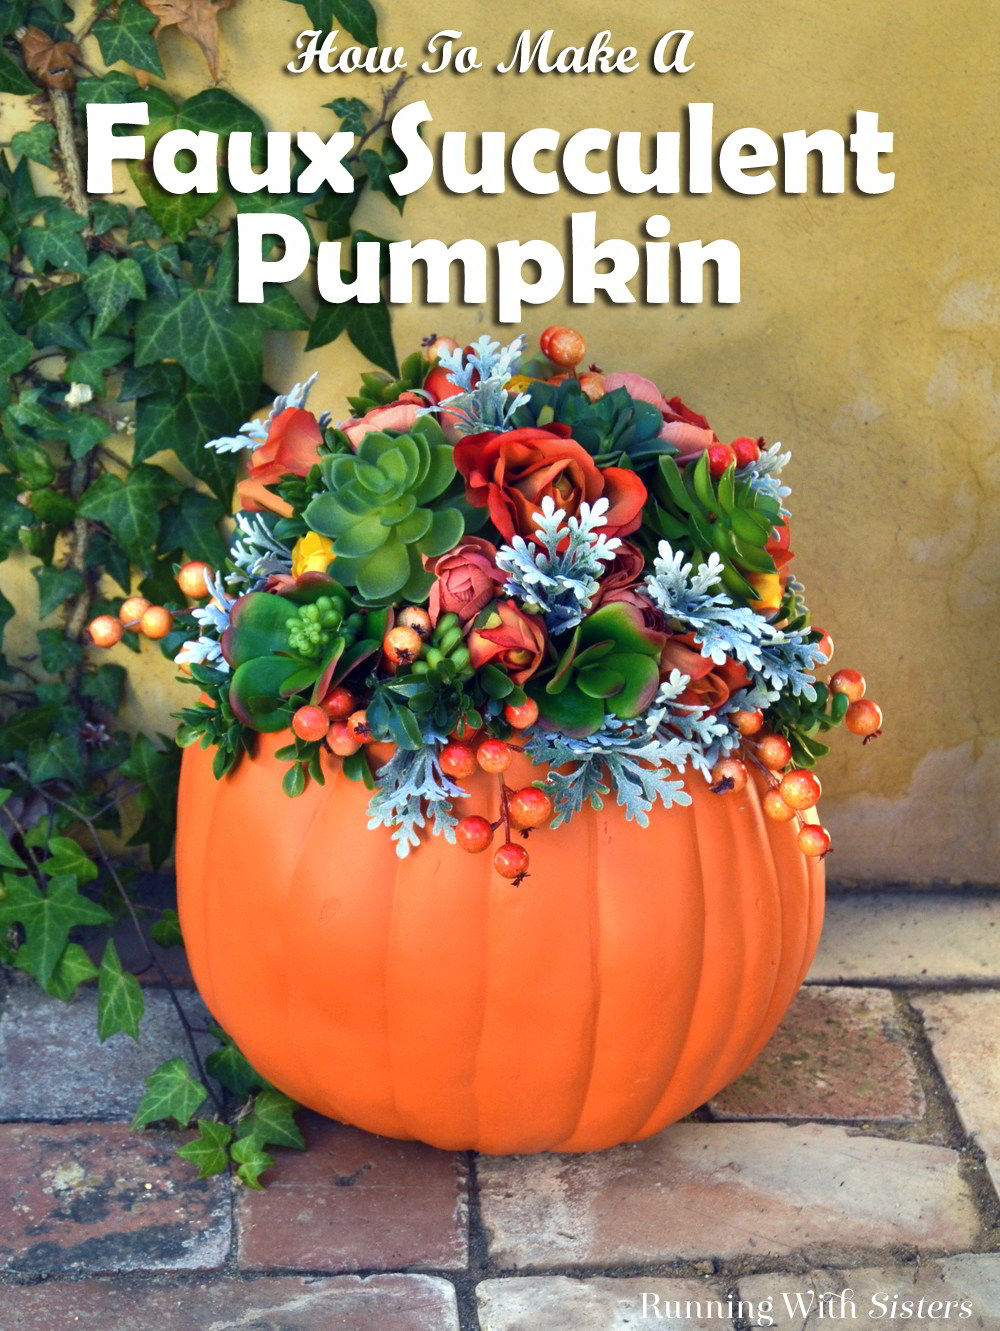 Make a faux succulent pumpkin for fall! Arrange silk roses and faux succulents in a carvable Funkin for a fall centerpiece or front door decor.